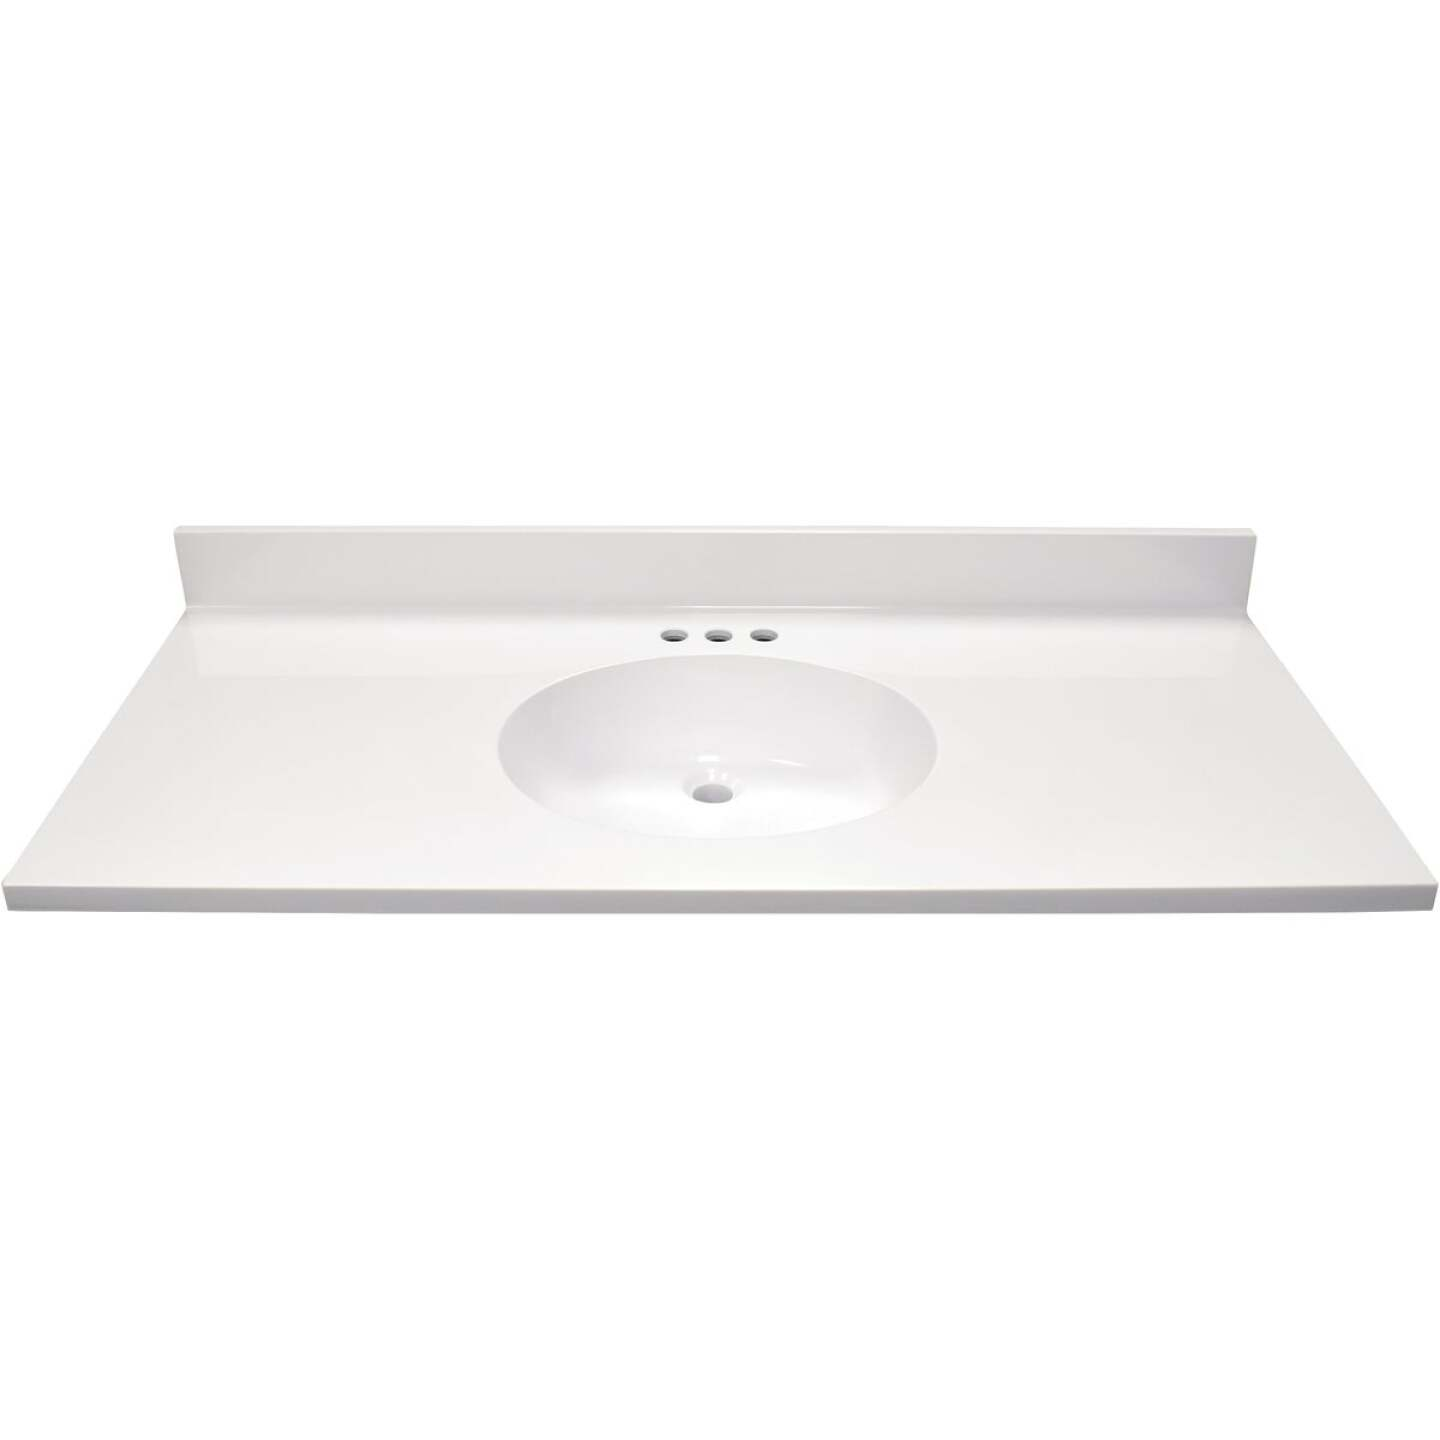 Modular Vanity Tops 49 In. W x 22 In. D Solid White Cultured Marble Vanity Top with Oval Bowl Image 2